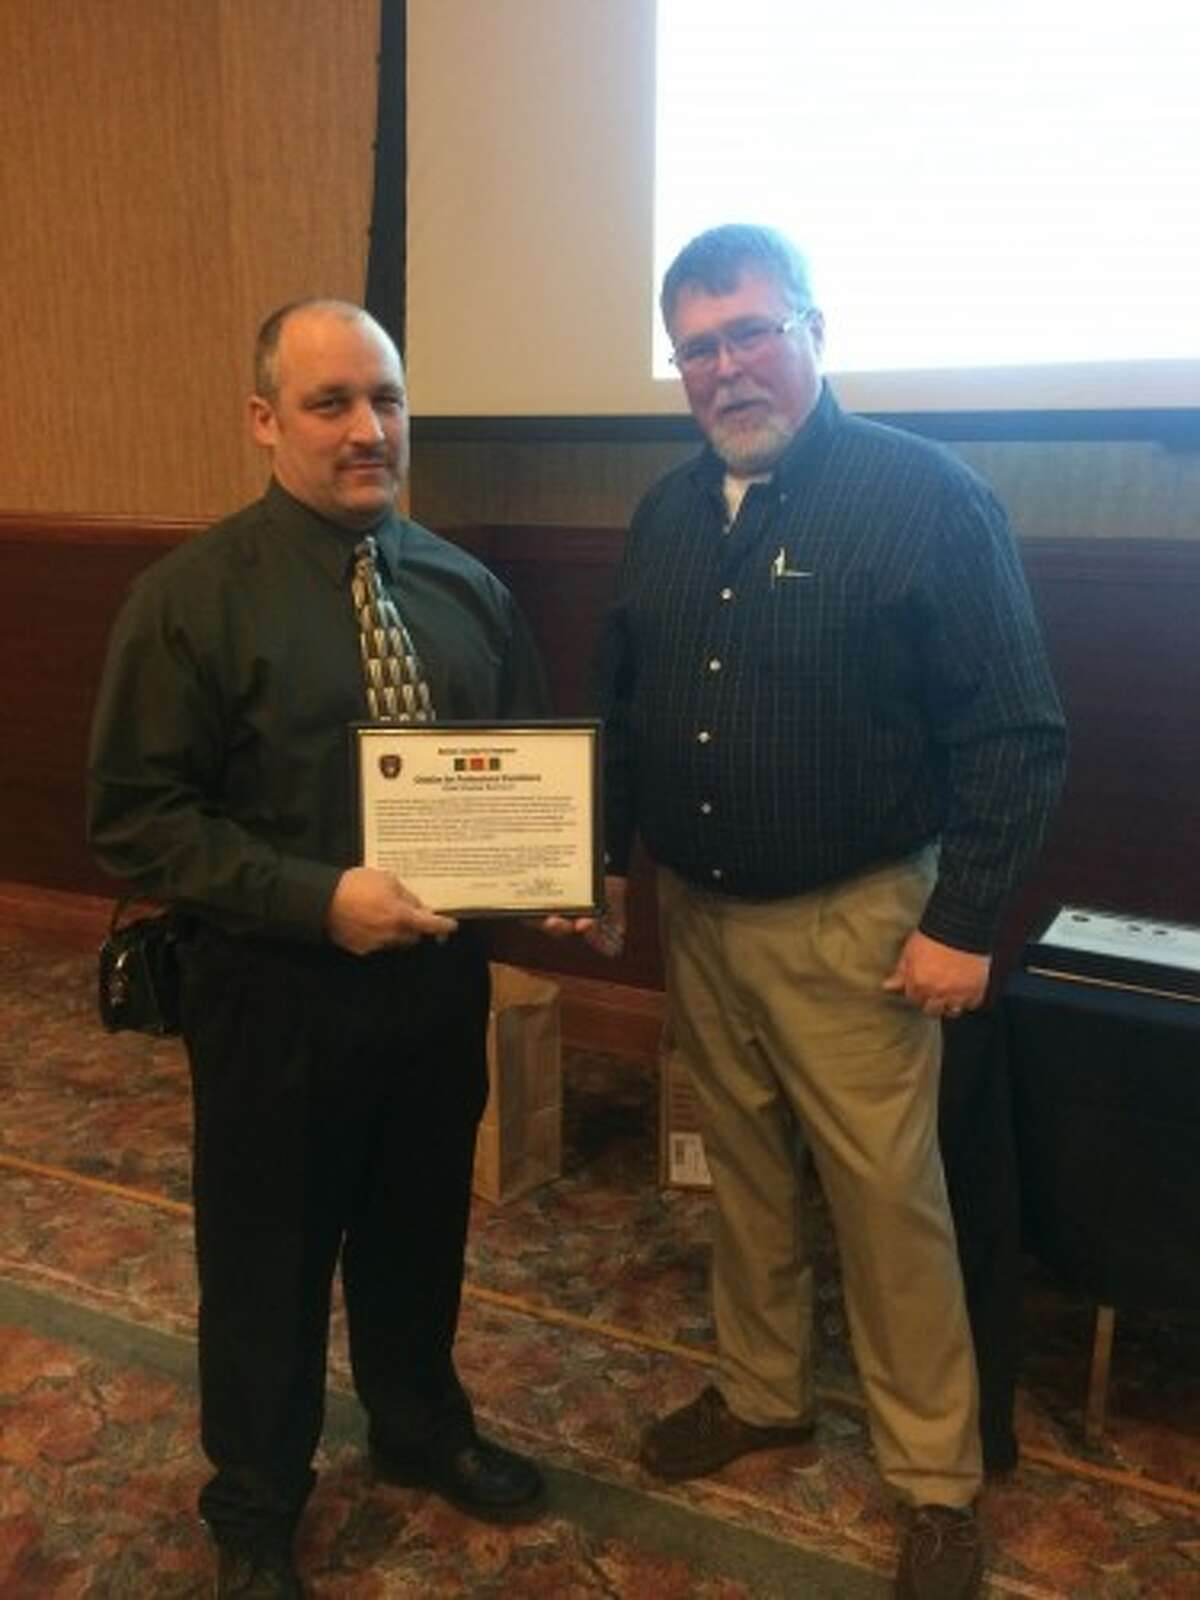 """Chief Charles Barron of the Manistee Township Fire Department accepts an award in """"Citation of Professional Excellence"""" from Dennis Bjorkquist, township supervisor, on behalf of the staff of the fire department. (Courtesy photo)"""